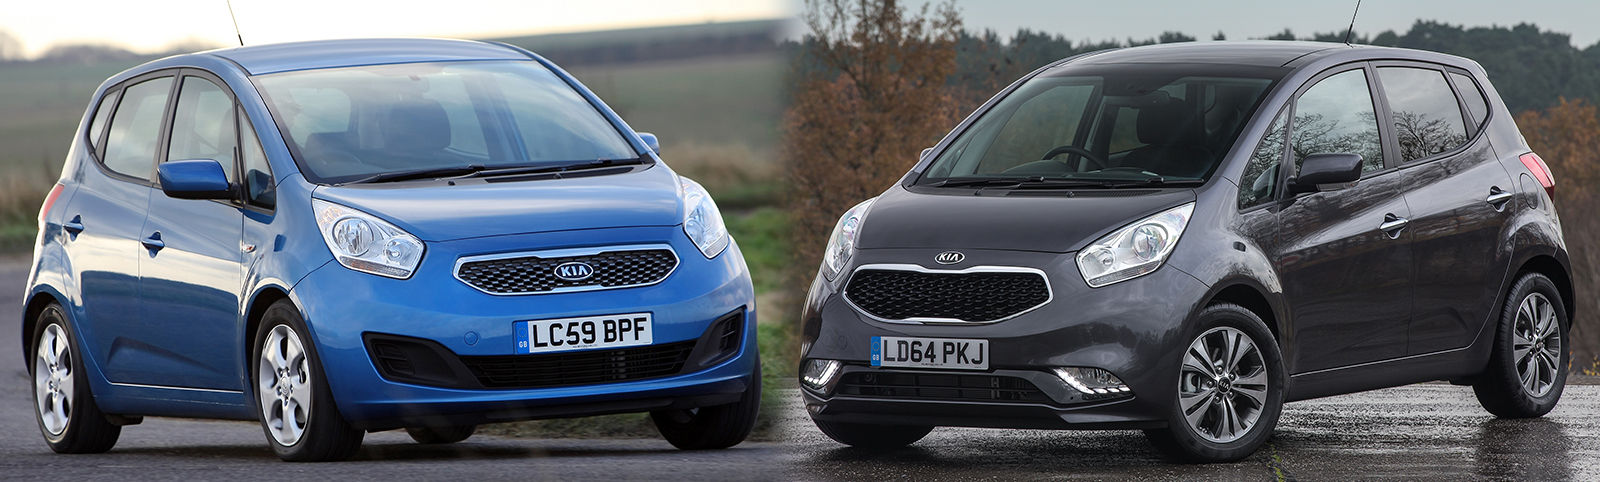 Kia Rio And Venga Get Surprisingly Subtle 2015 Updates